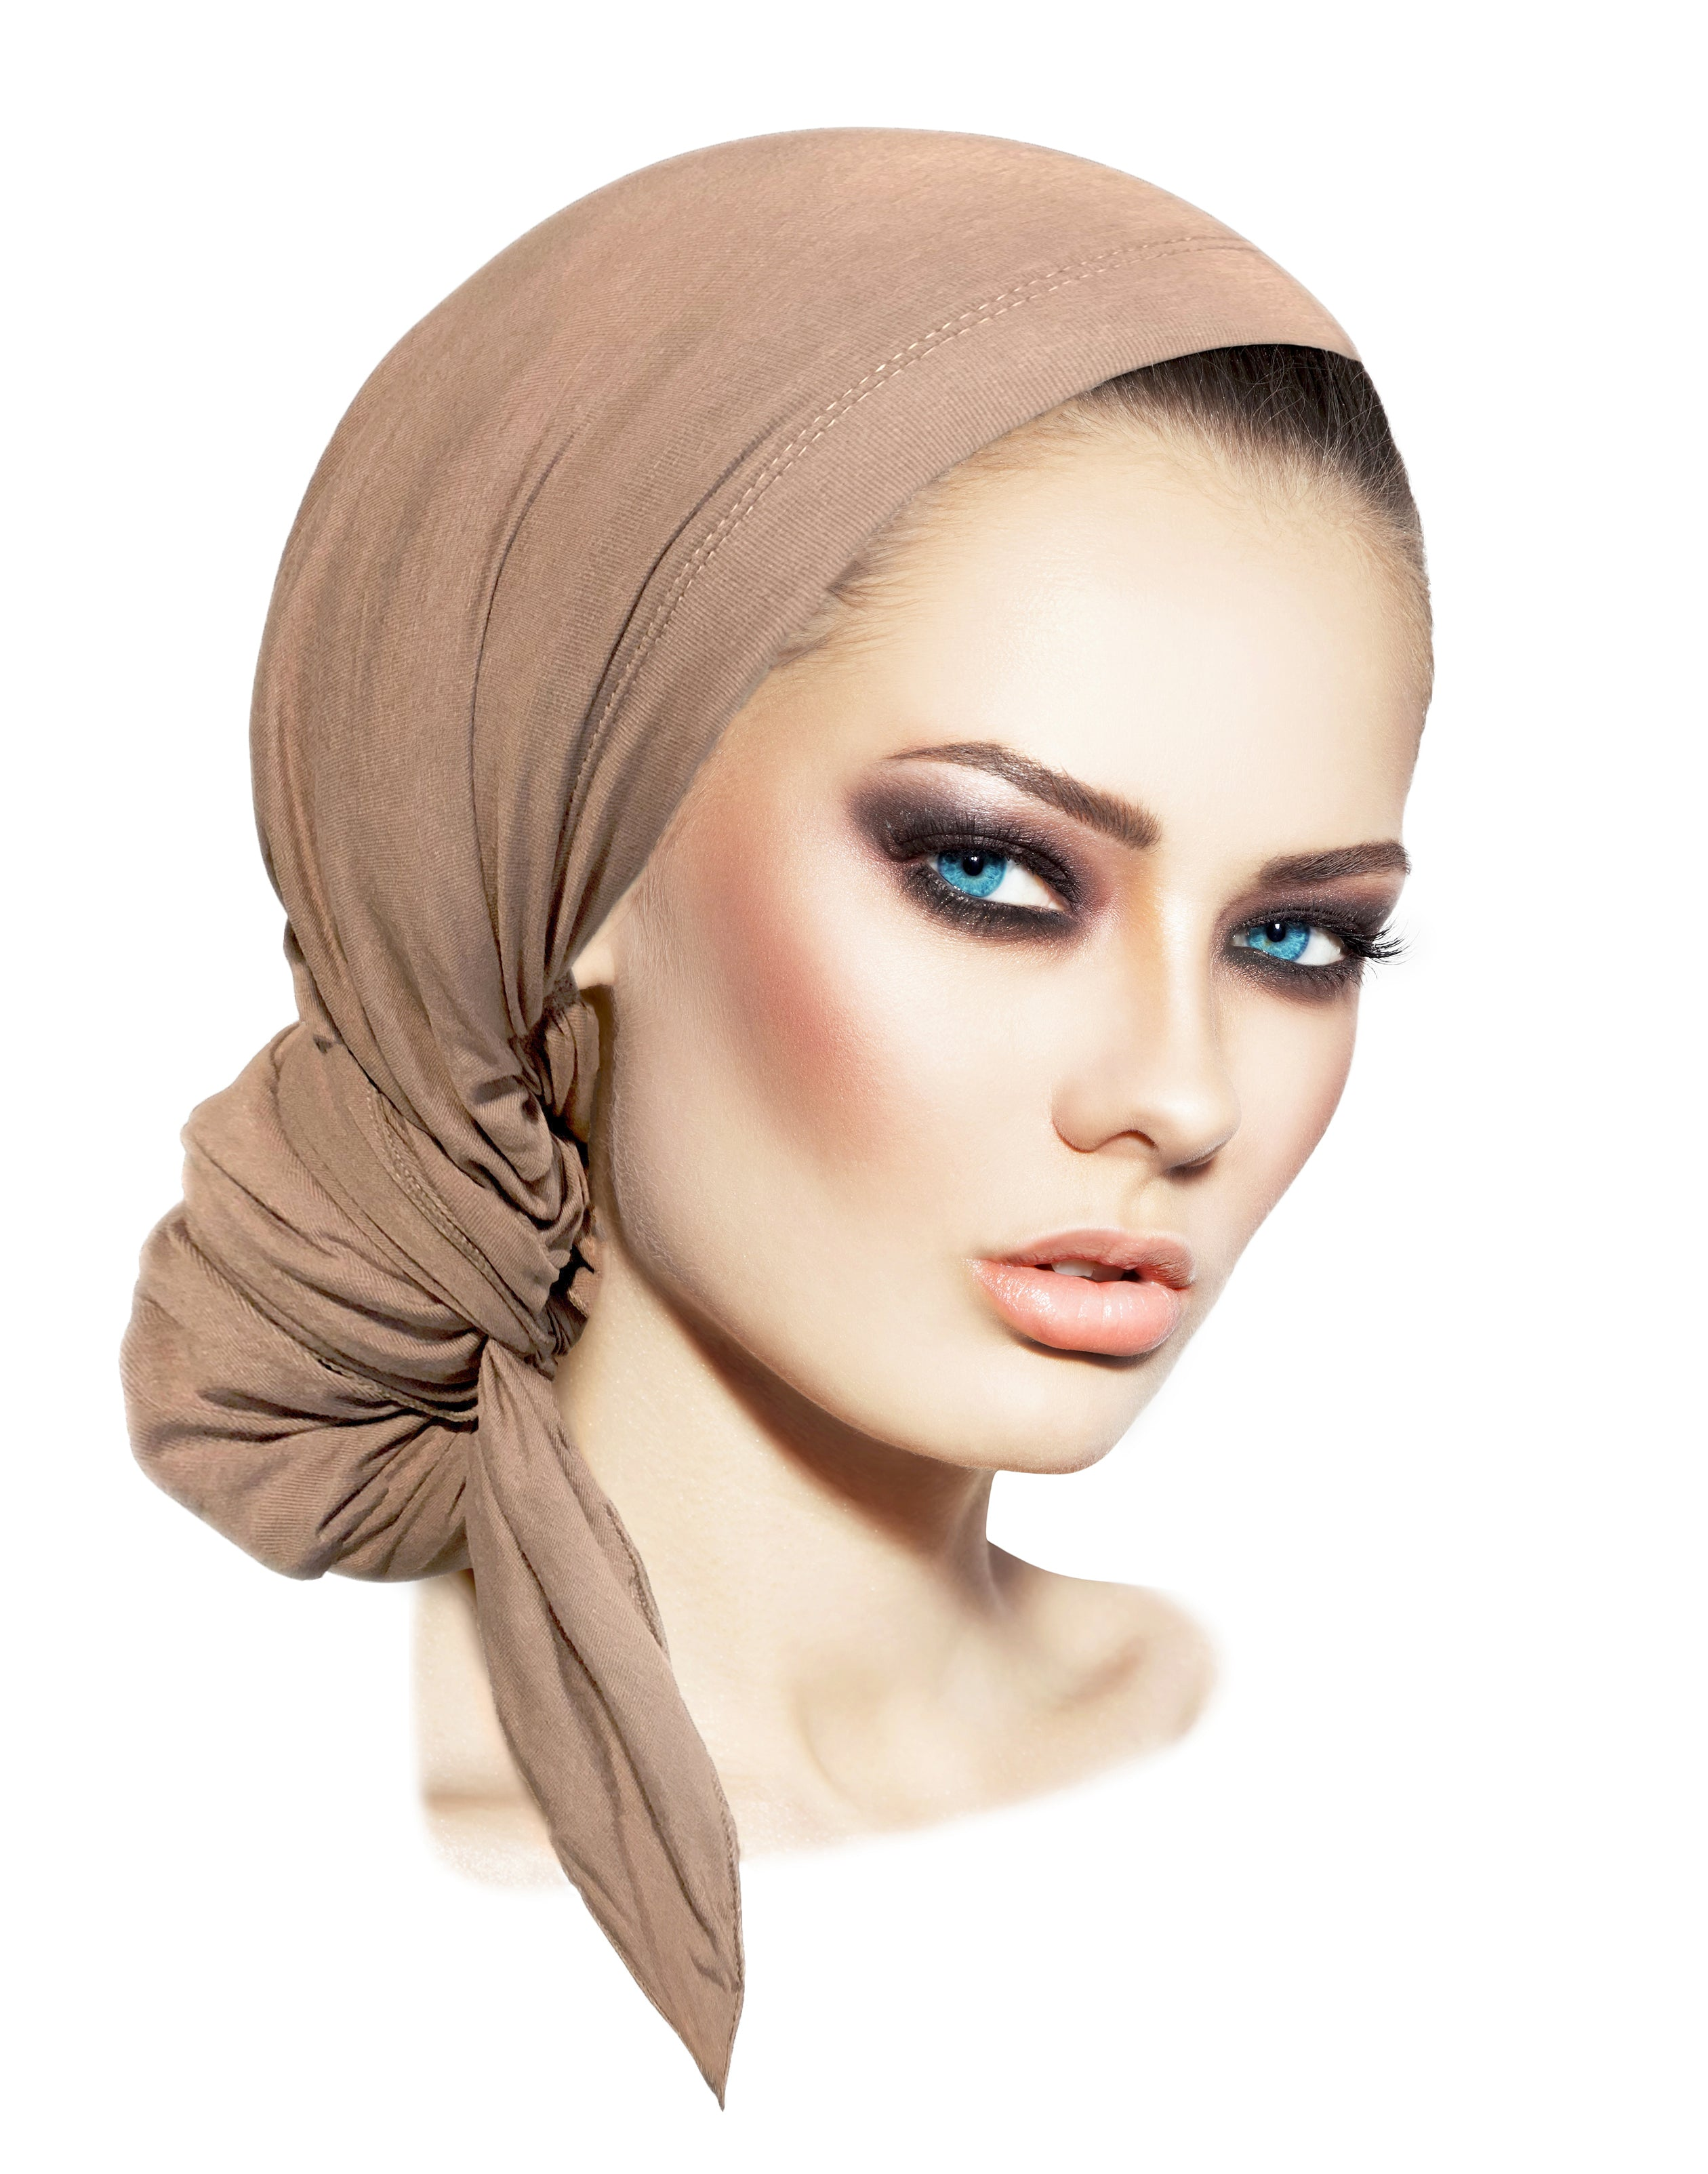 Long beige cotton headscarf